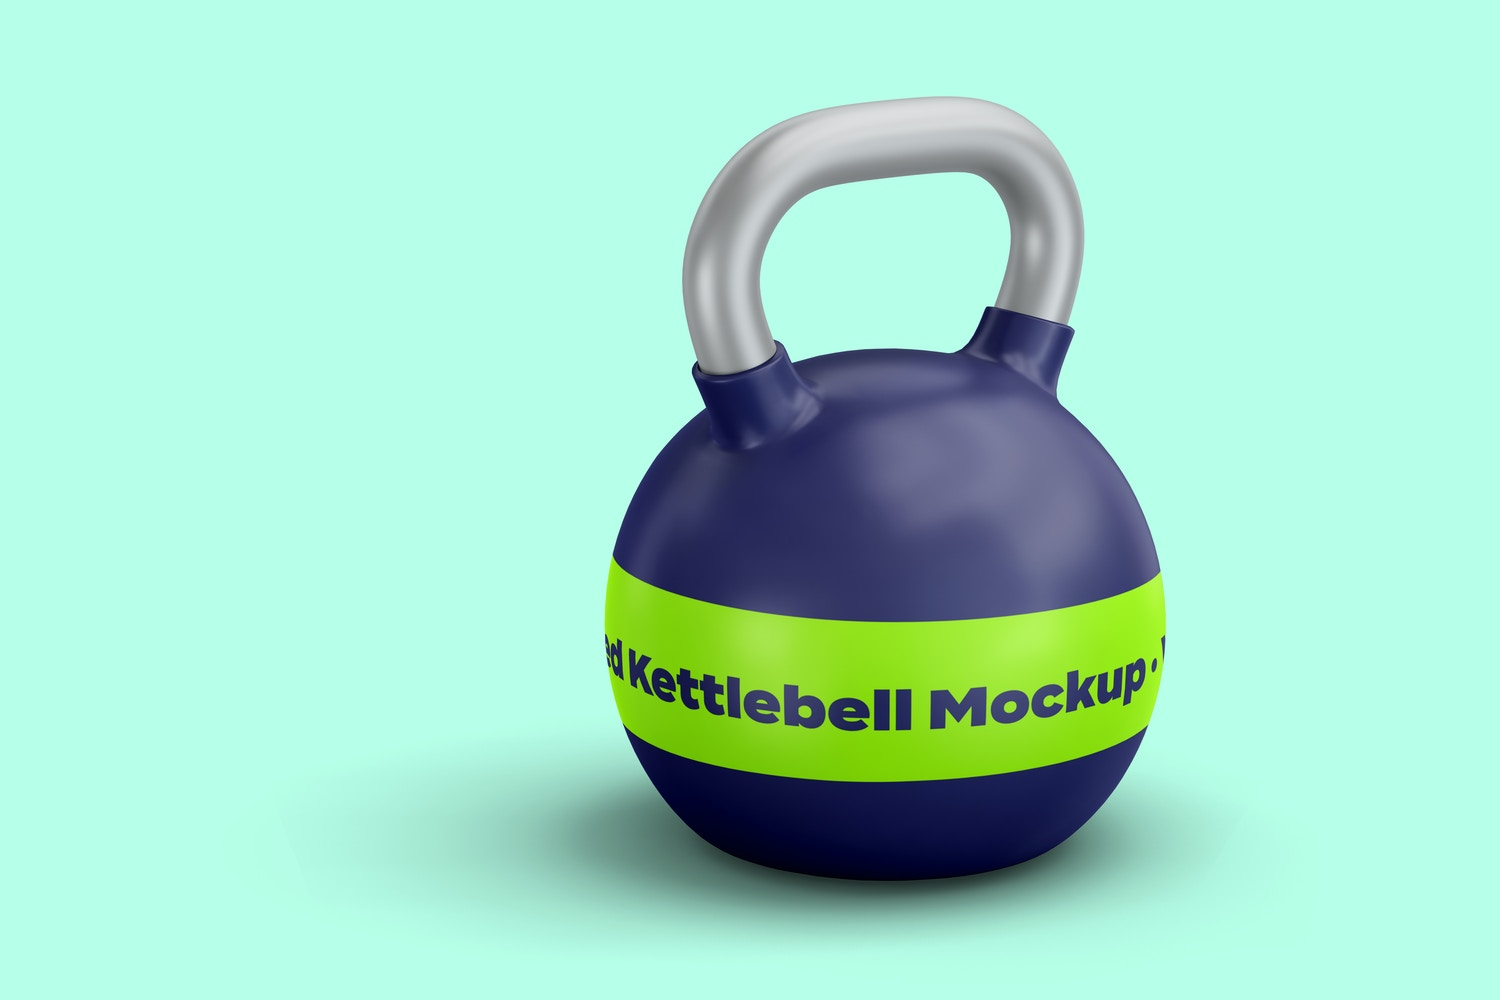 Here you can appreciate the metallic details on the grip of the kettlebell.